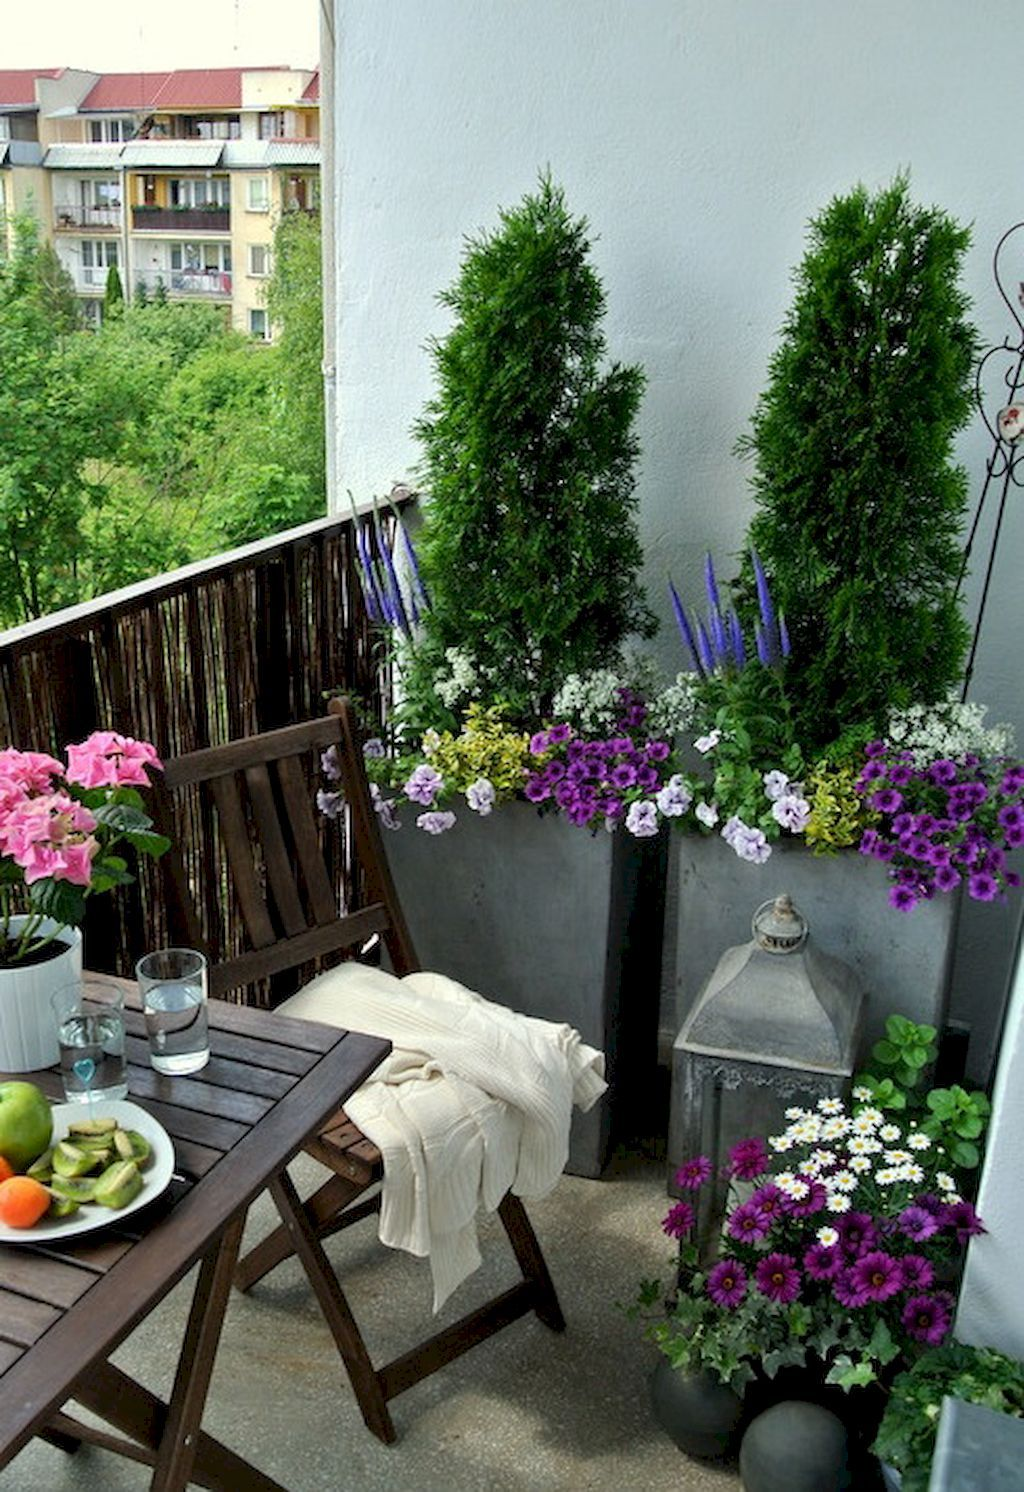 80 small apartment balcony decorating ideas on a budget for Small balcony ideas on a budget